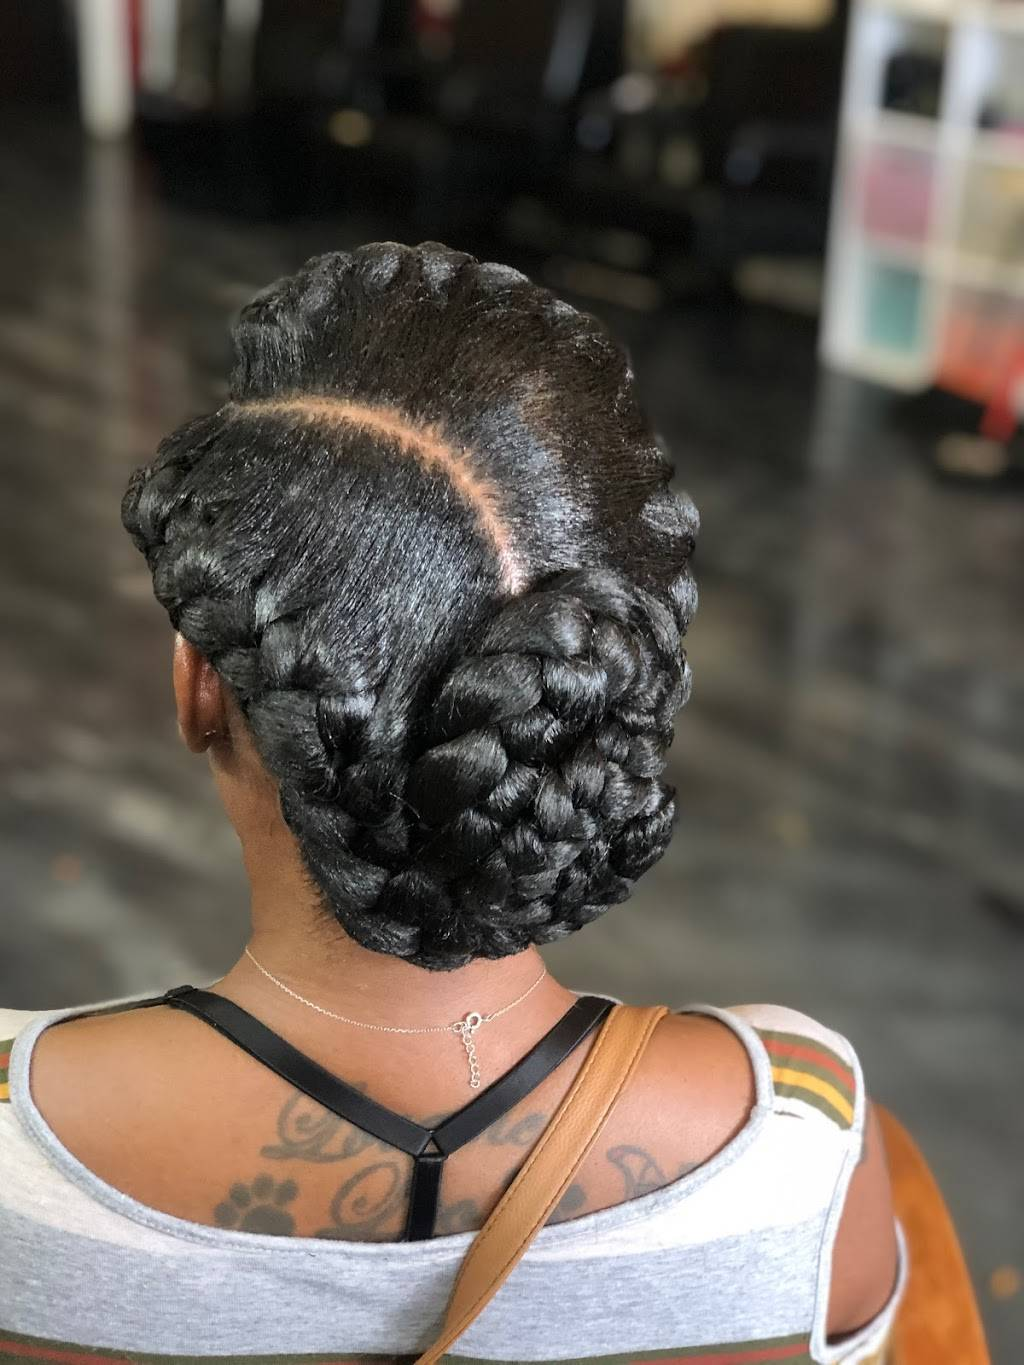 Queen Creative Solutions - hair care  | Photo 1 of 9 | Address: 3600 18th Ave S, St. Petersburg, FL 33711, USA | Phone: (727) 265-0013